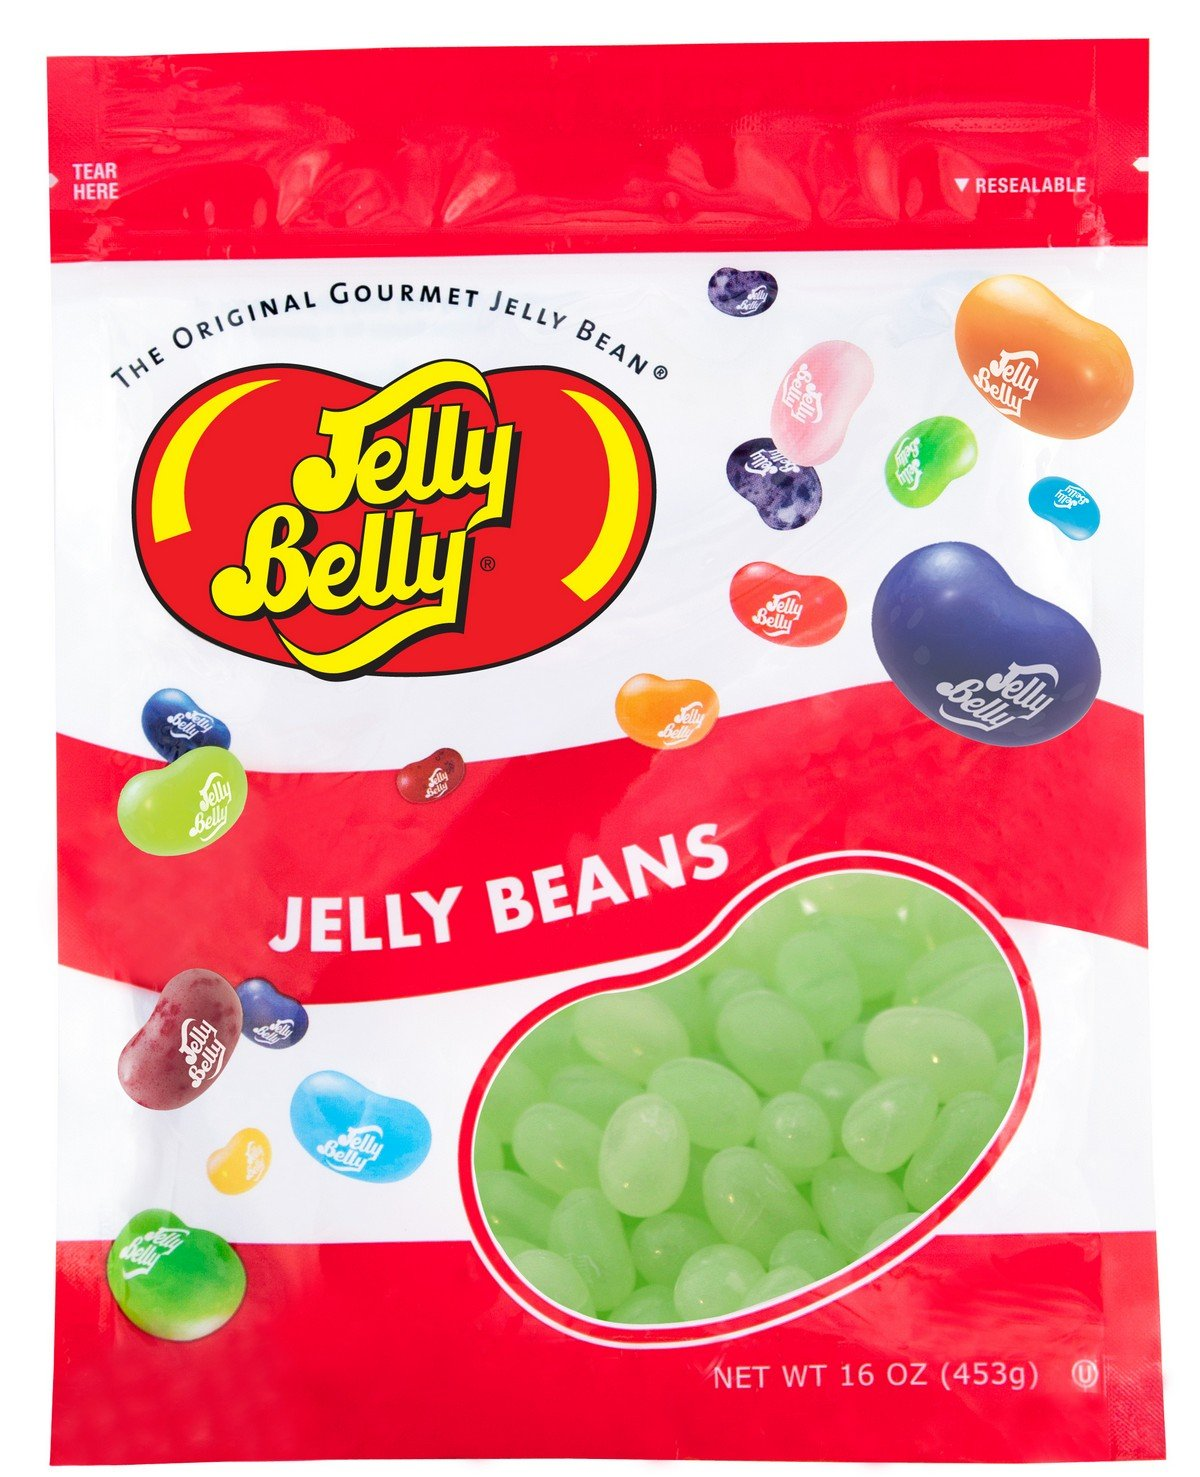 Jelly Belly 7UP Jelly Beans - 1 Pound (16 Ounces) Resealable Bag - Genuine, Official, Straight from the Source